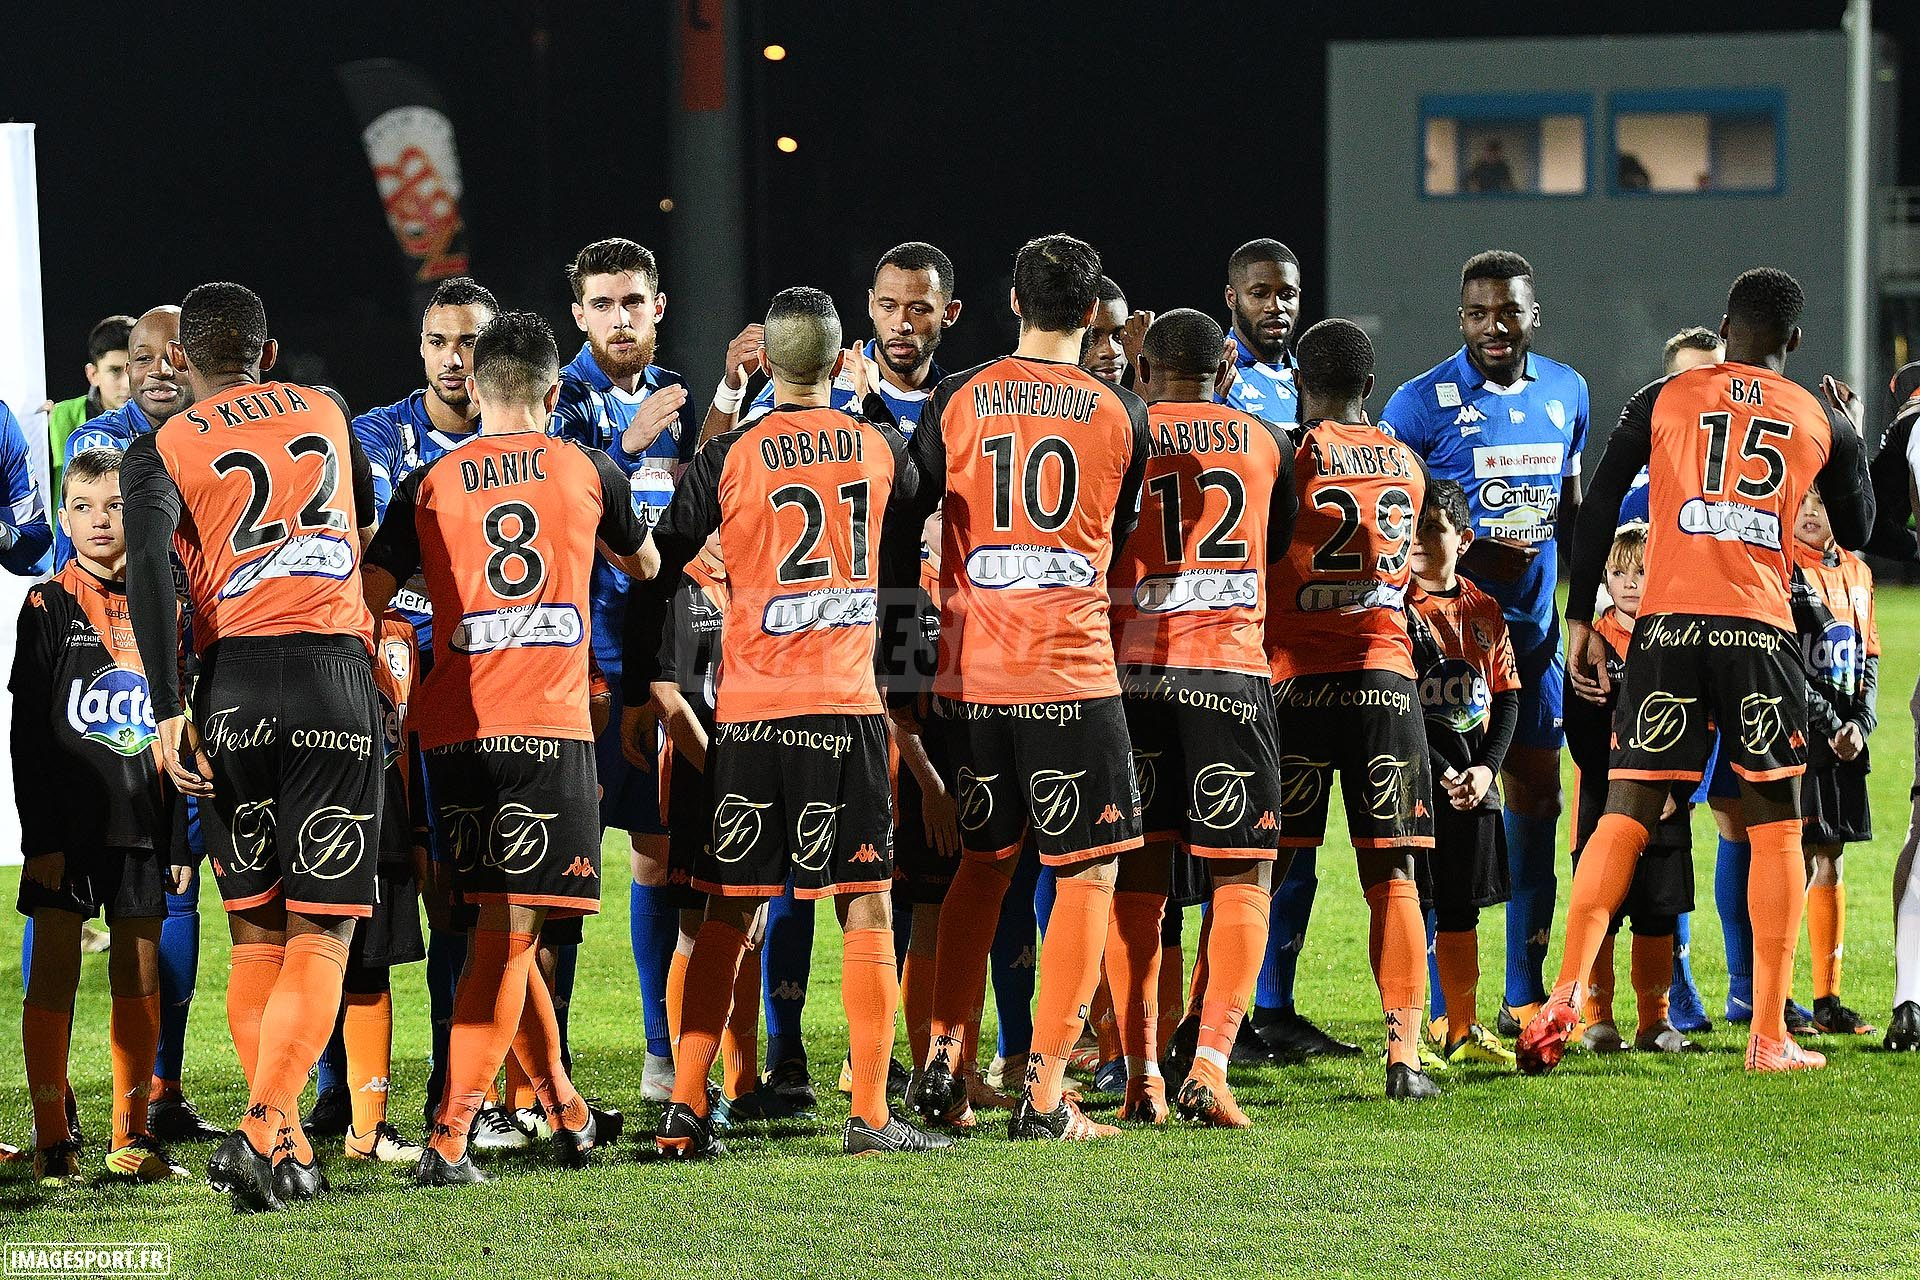 laval-drancy-imagesport-national_10